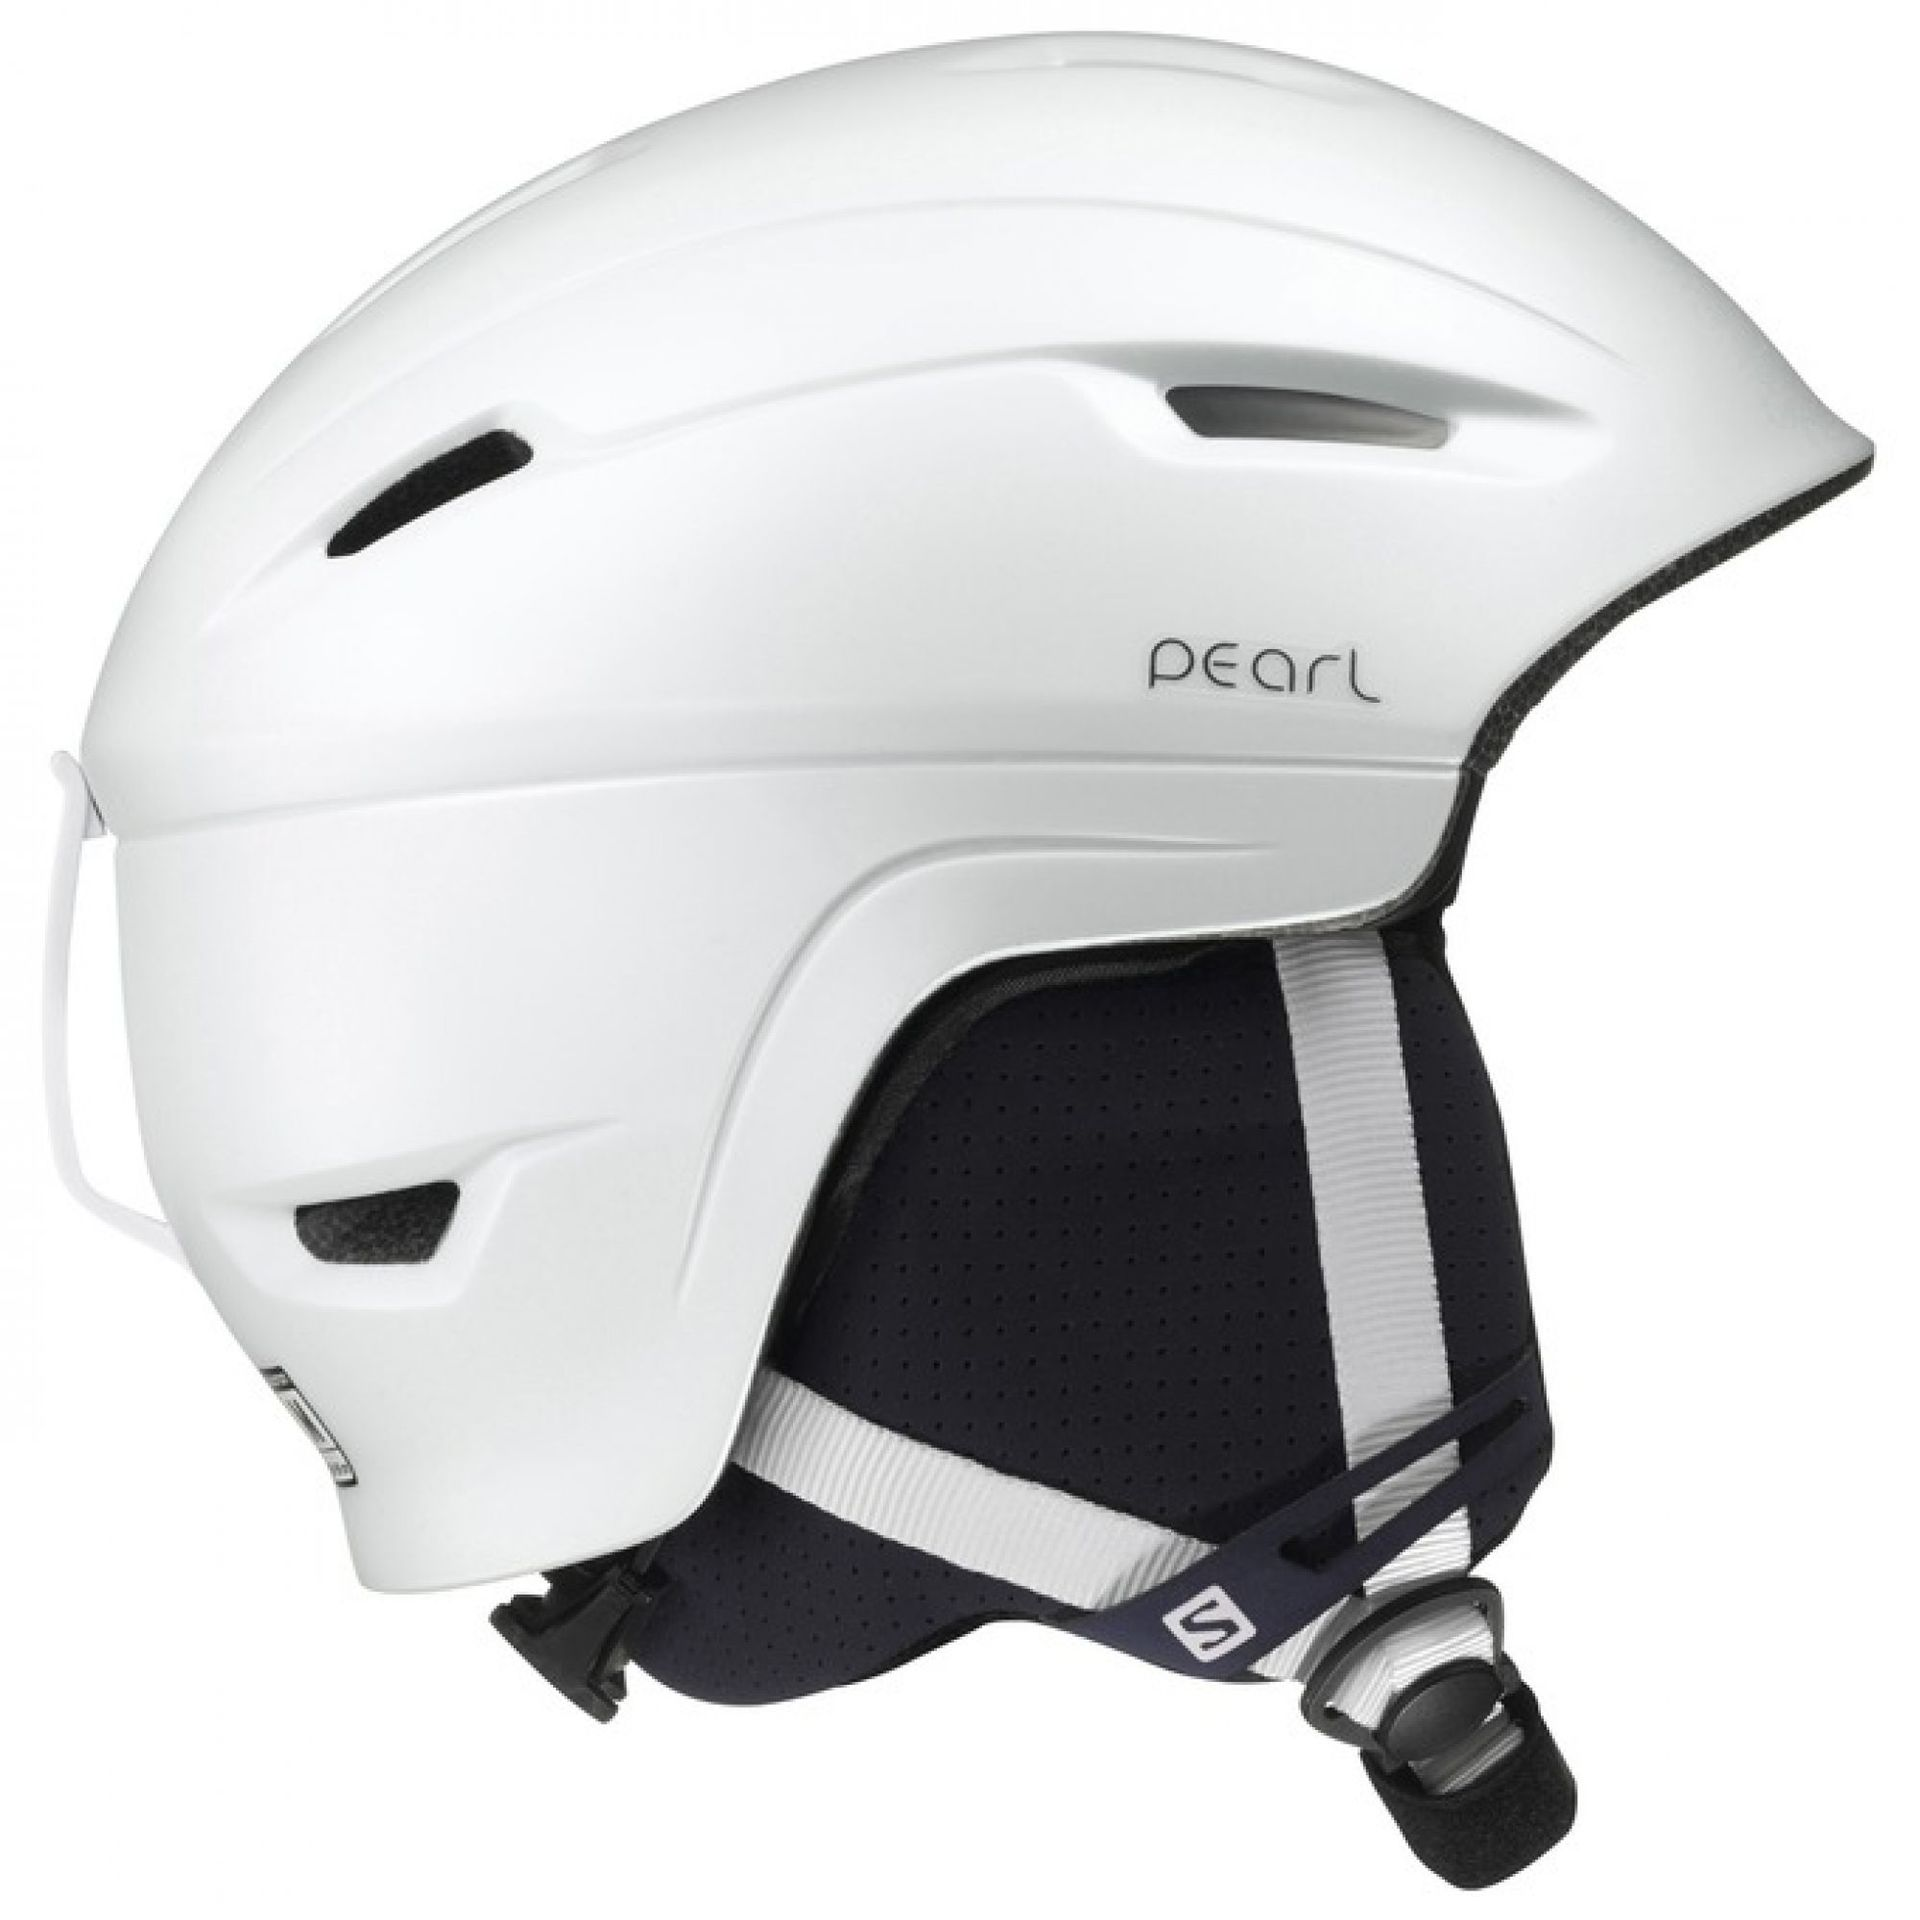 KASK SALOMON PEARL 4D2 WHITE